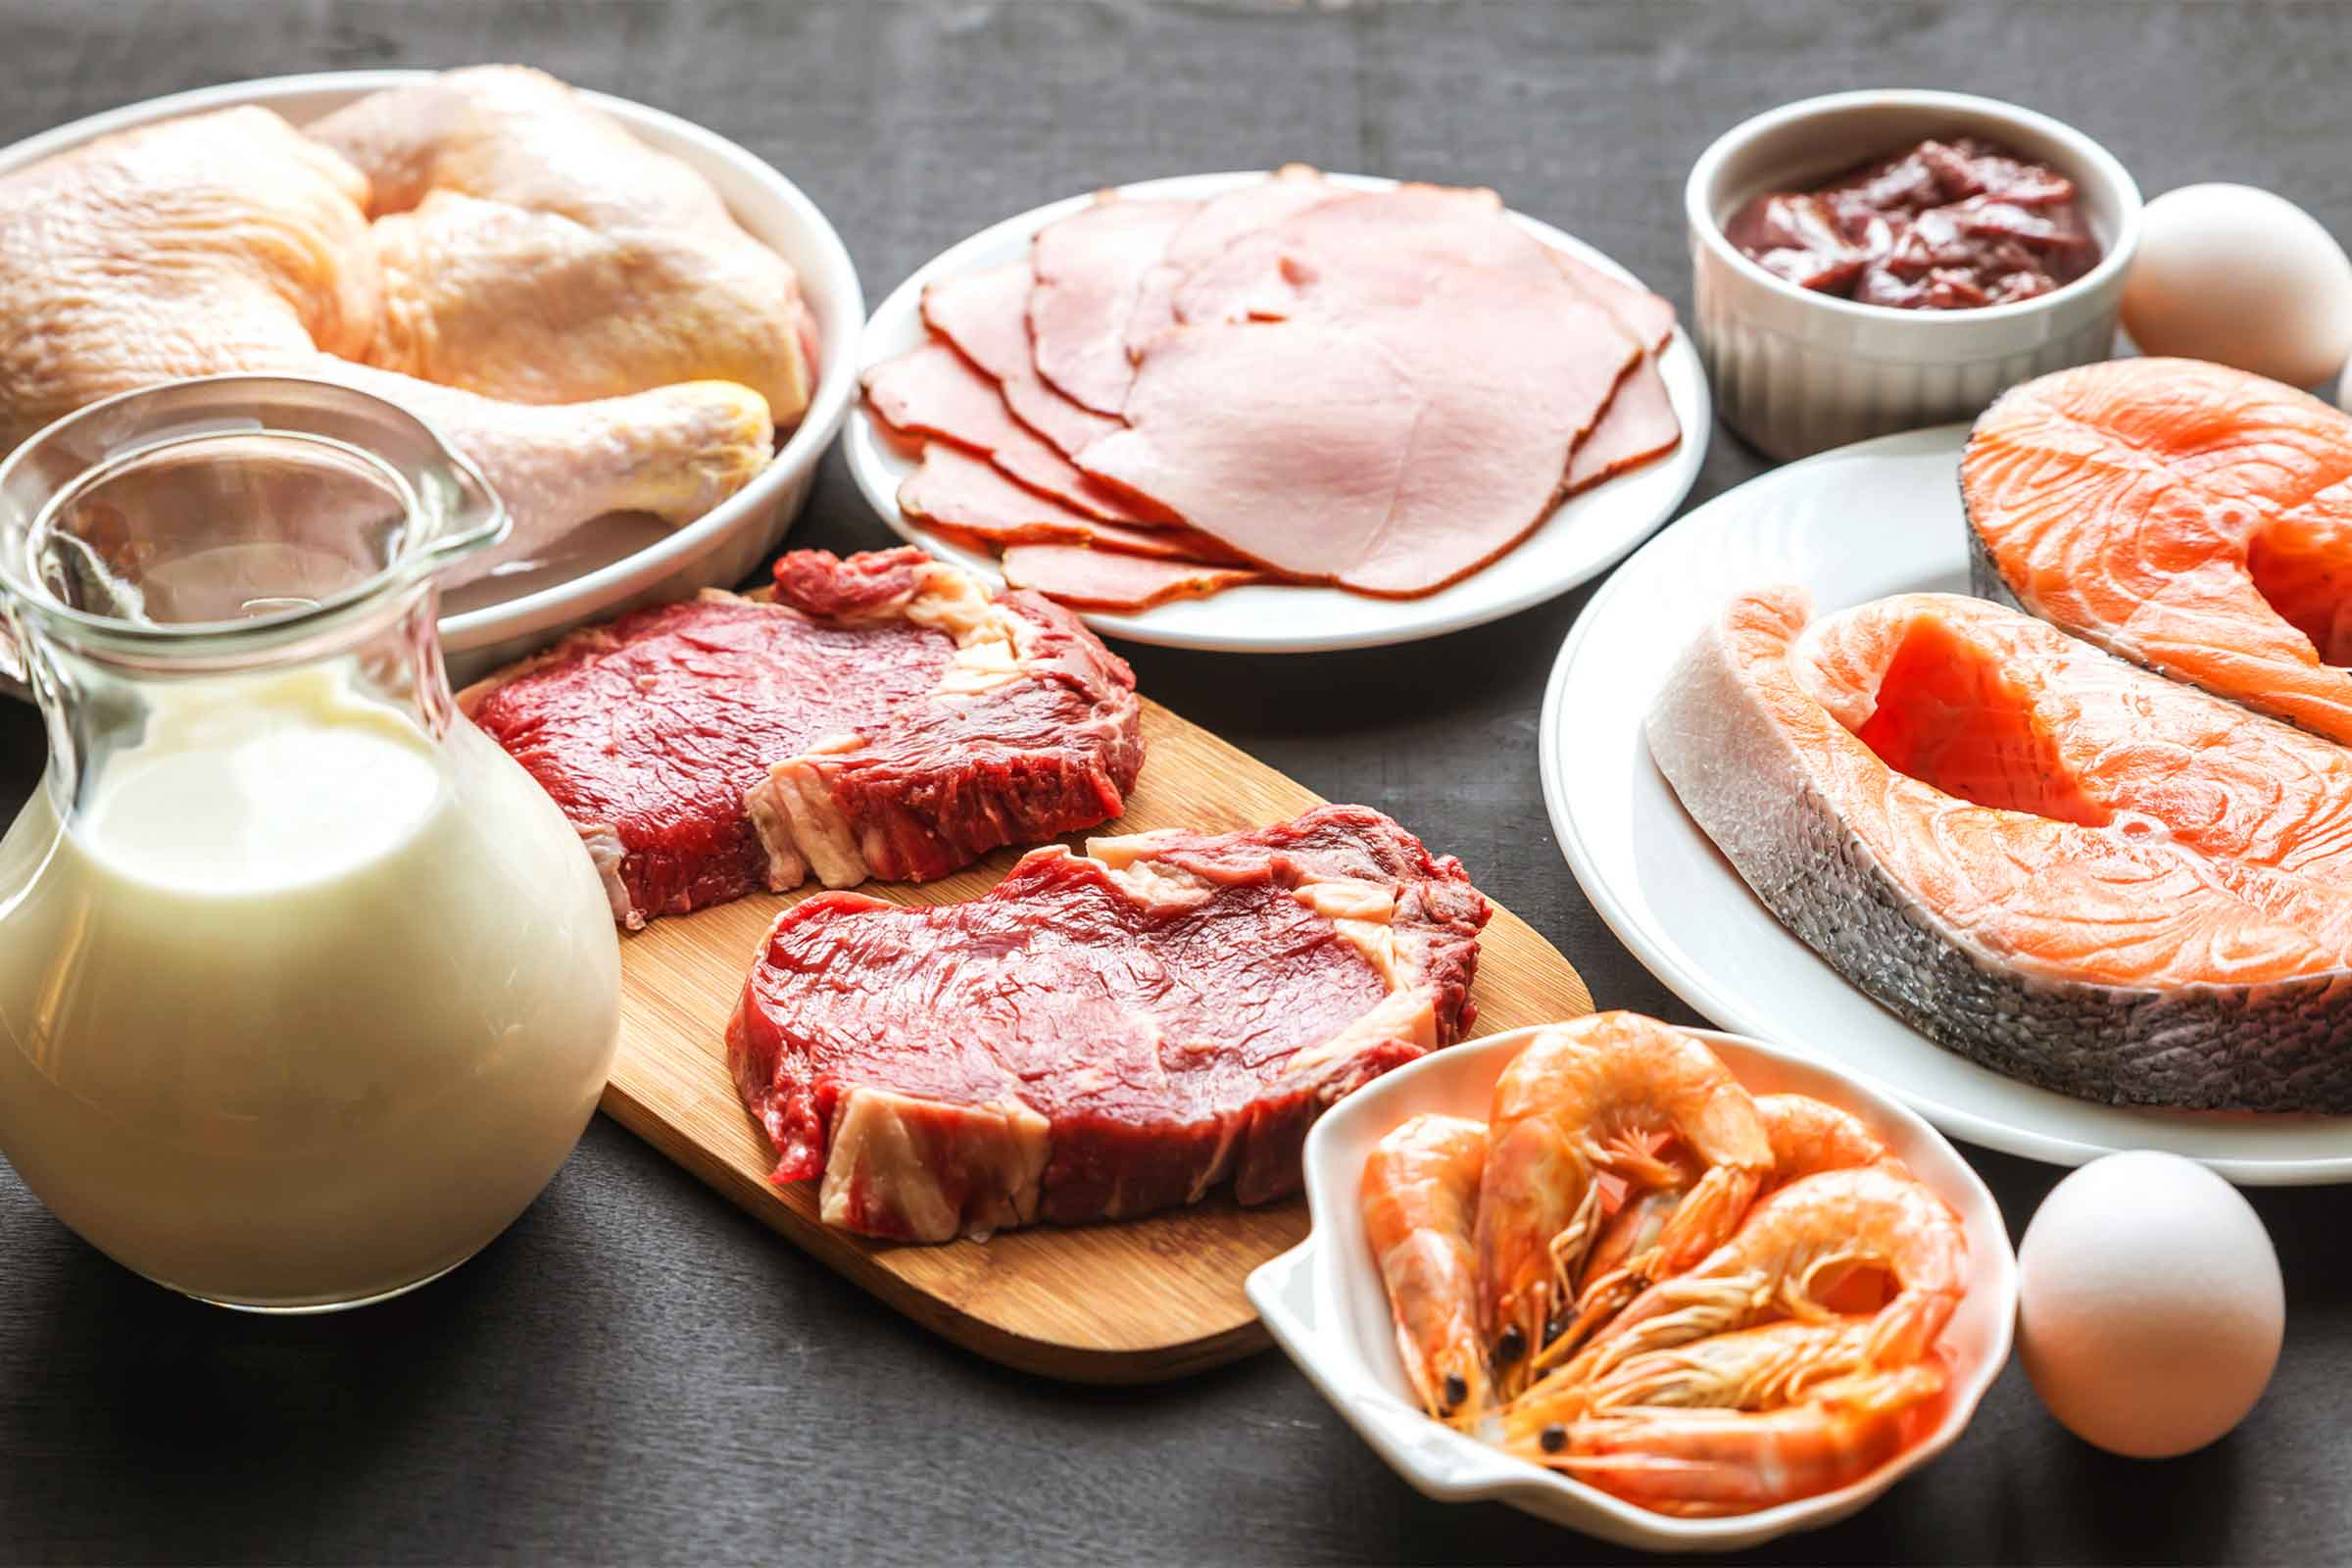 meat-fish-vegetables-eggs-soy-most-fruits-wholegrain-cereals